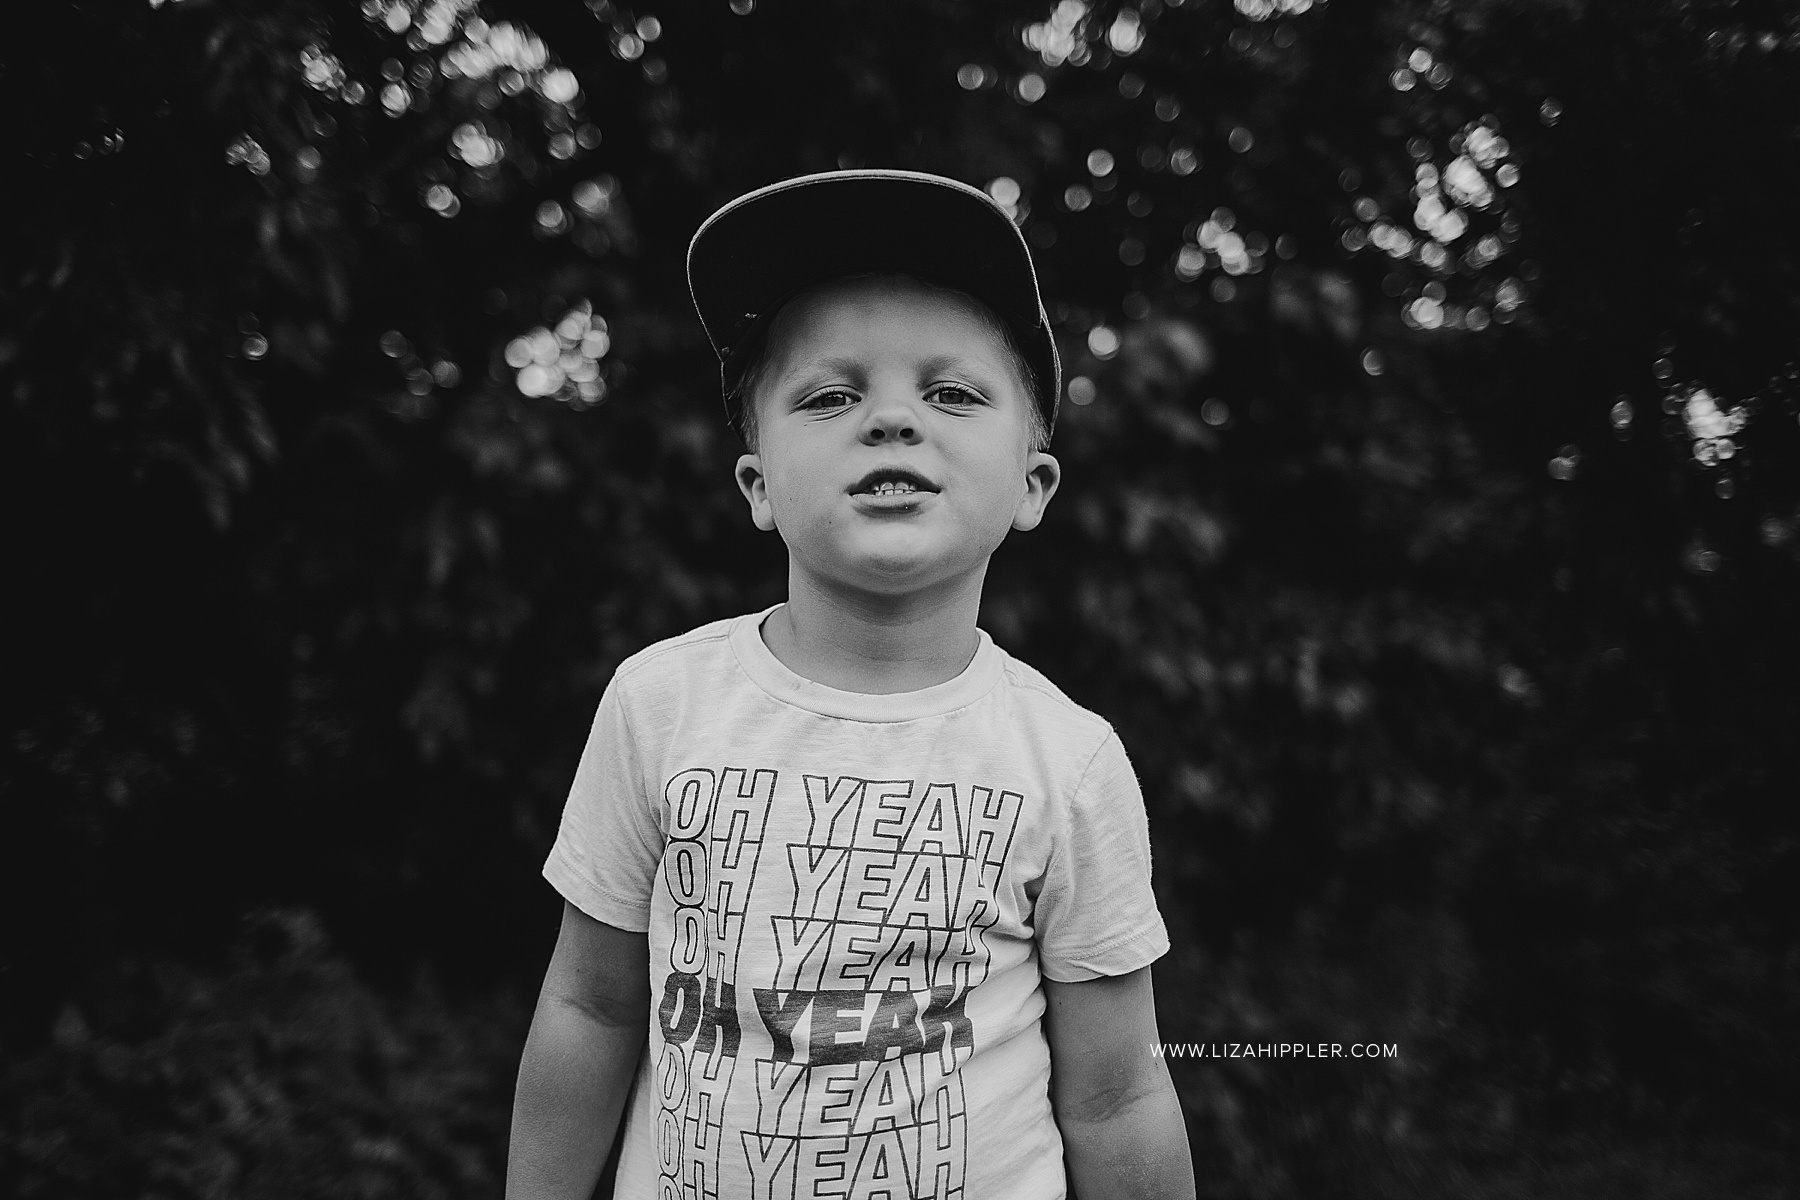 black and white image of young boy with baseball cap